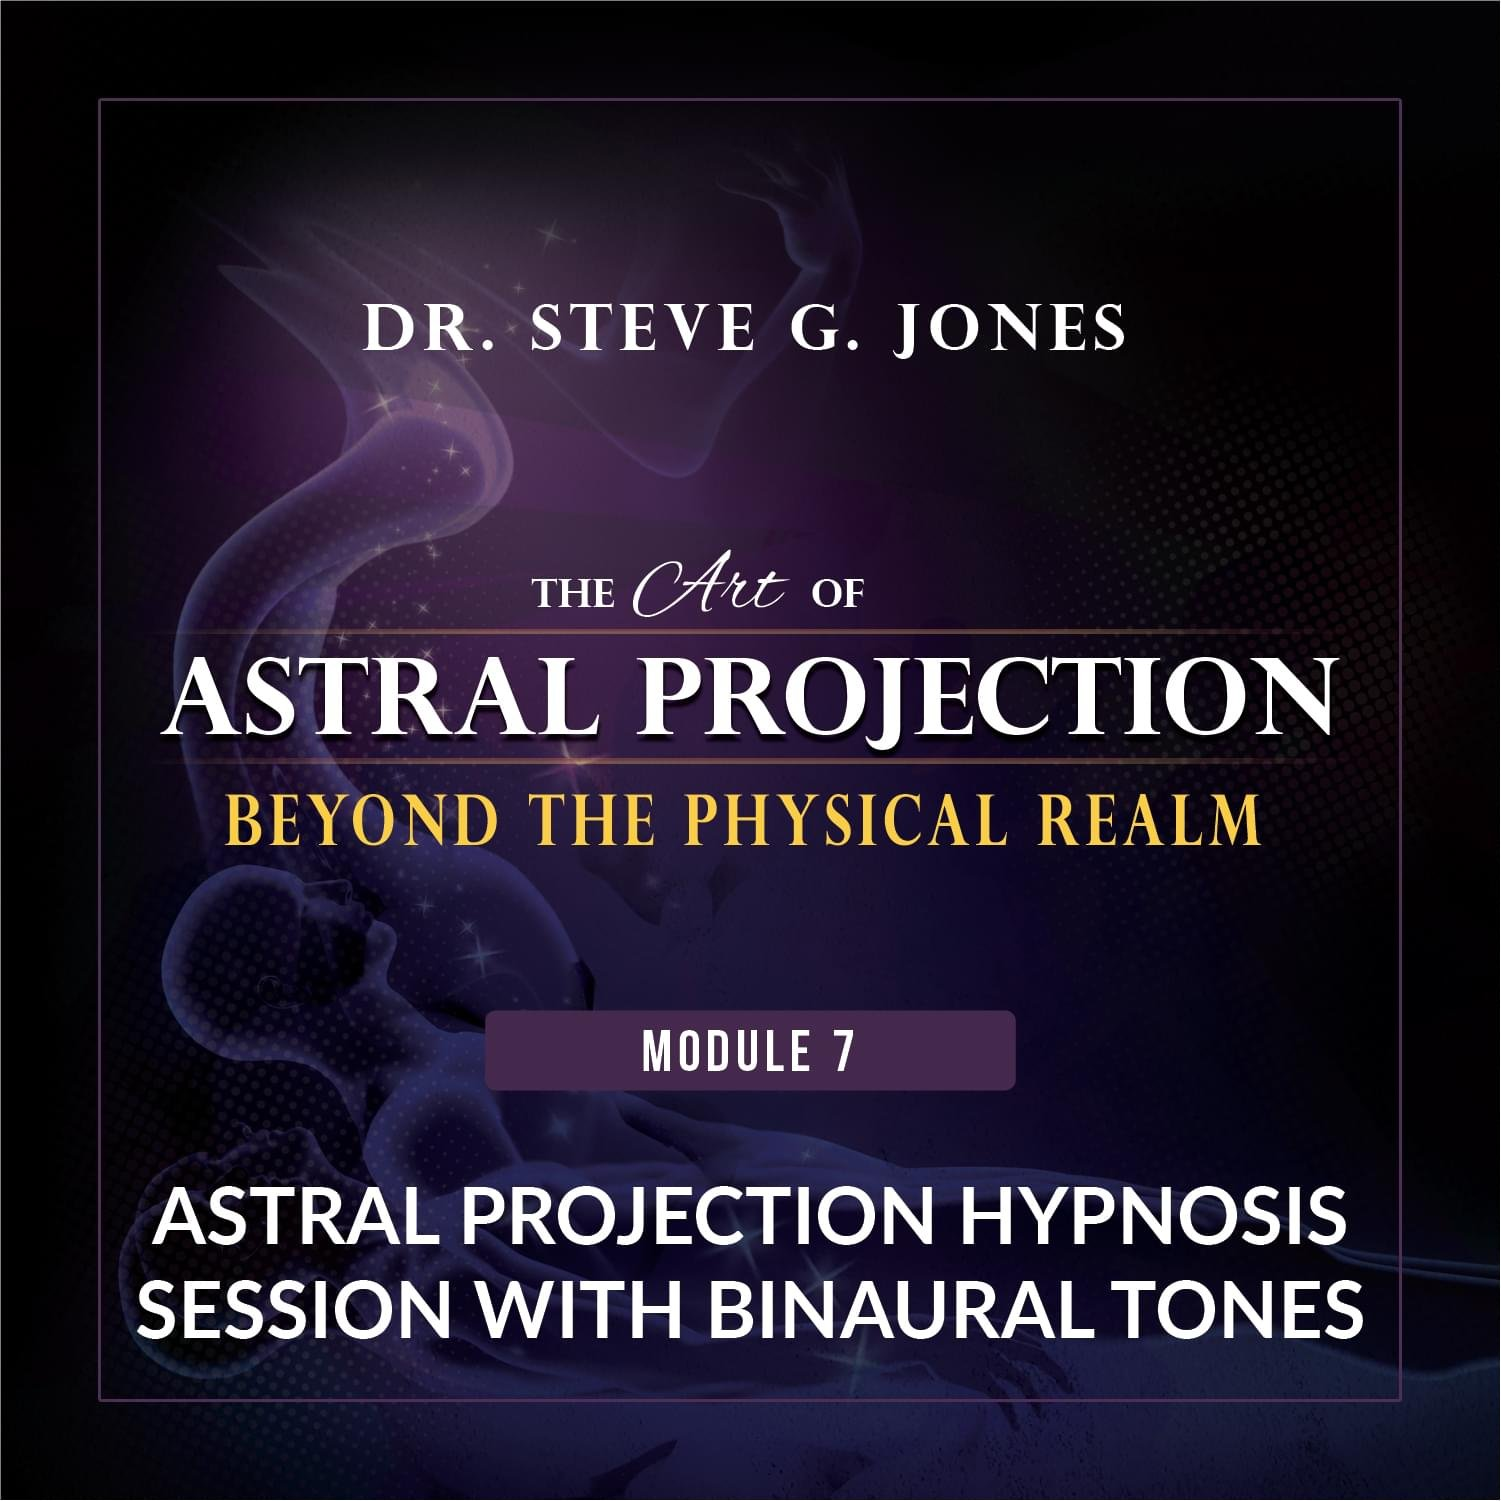 The Art of Astral Projection - Beyond the Physical Realm